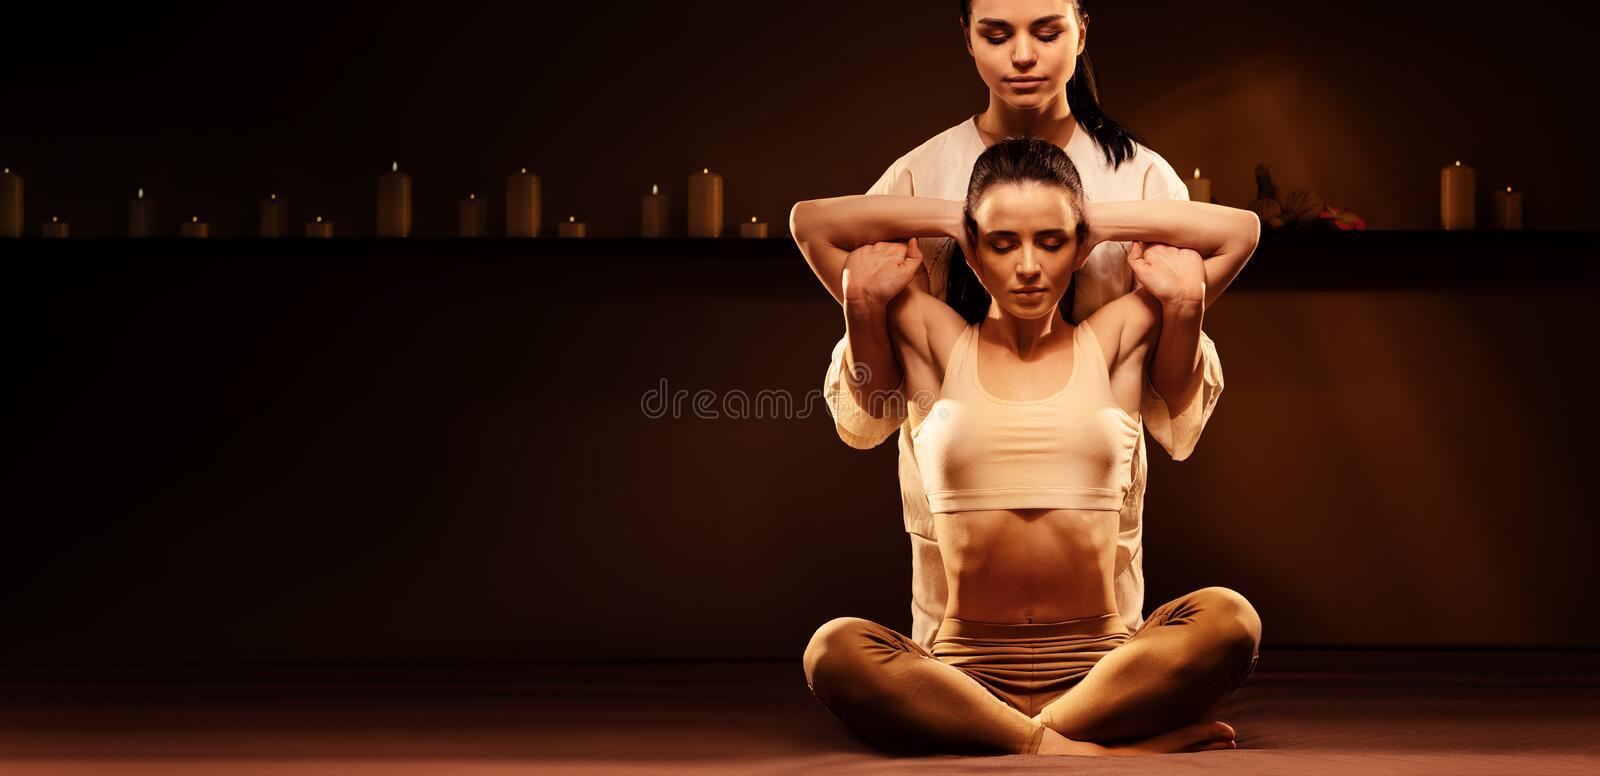 Young fit woman has Thai massage at luxury spa. Warm inviting colors, calm atmosphere, charming light. Copy space. Young fit women has Thai massage at luxury spa stock photography